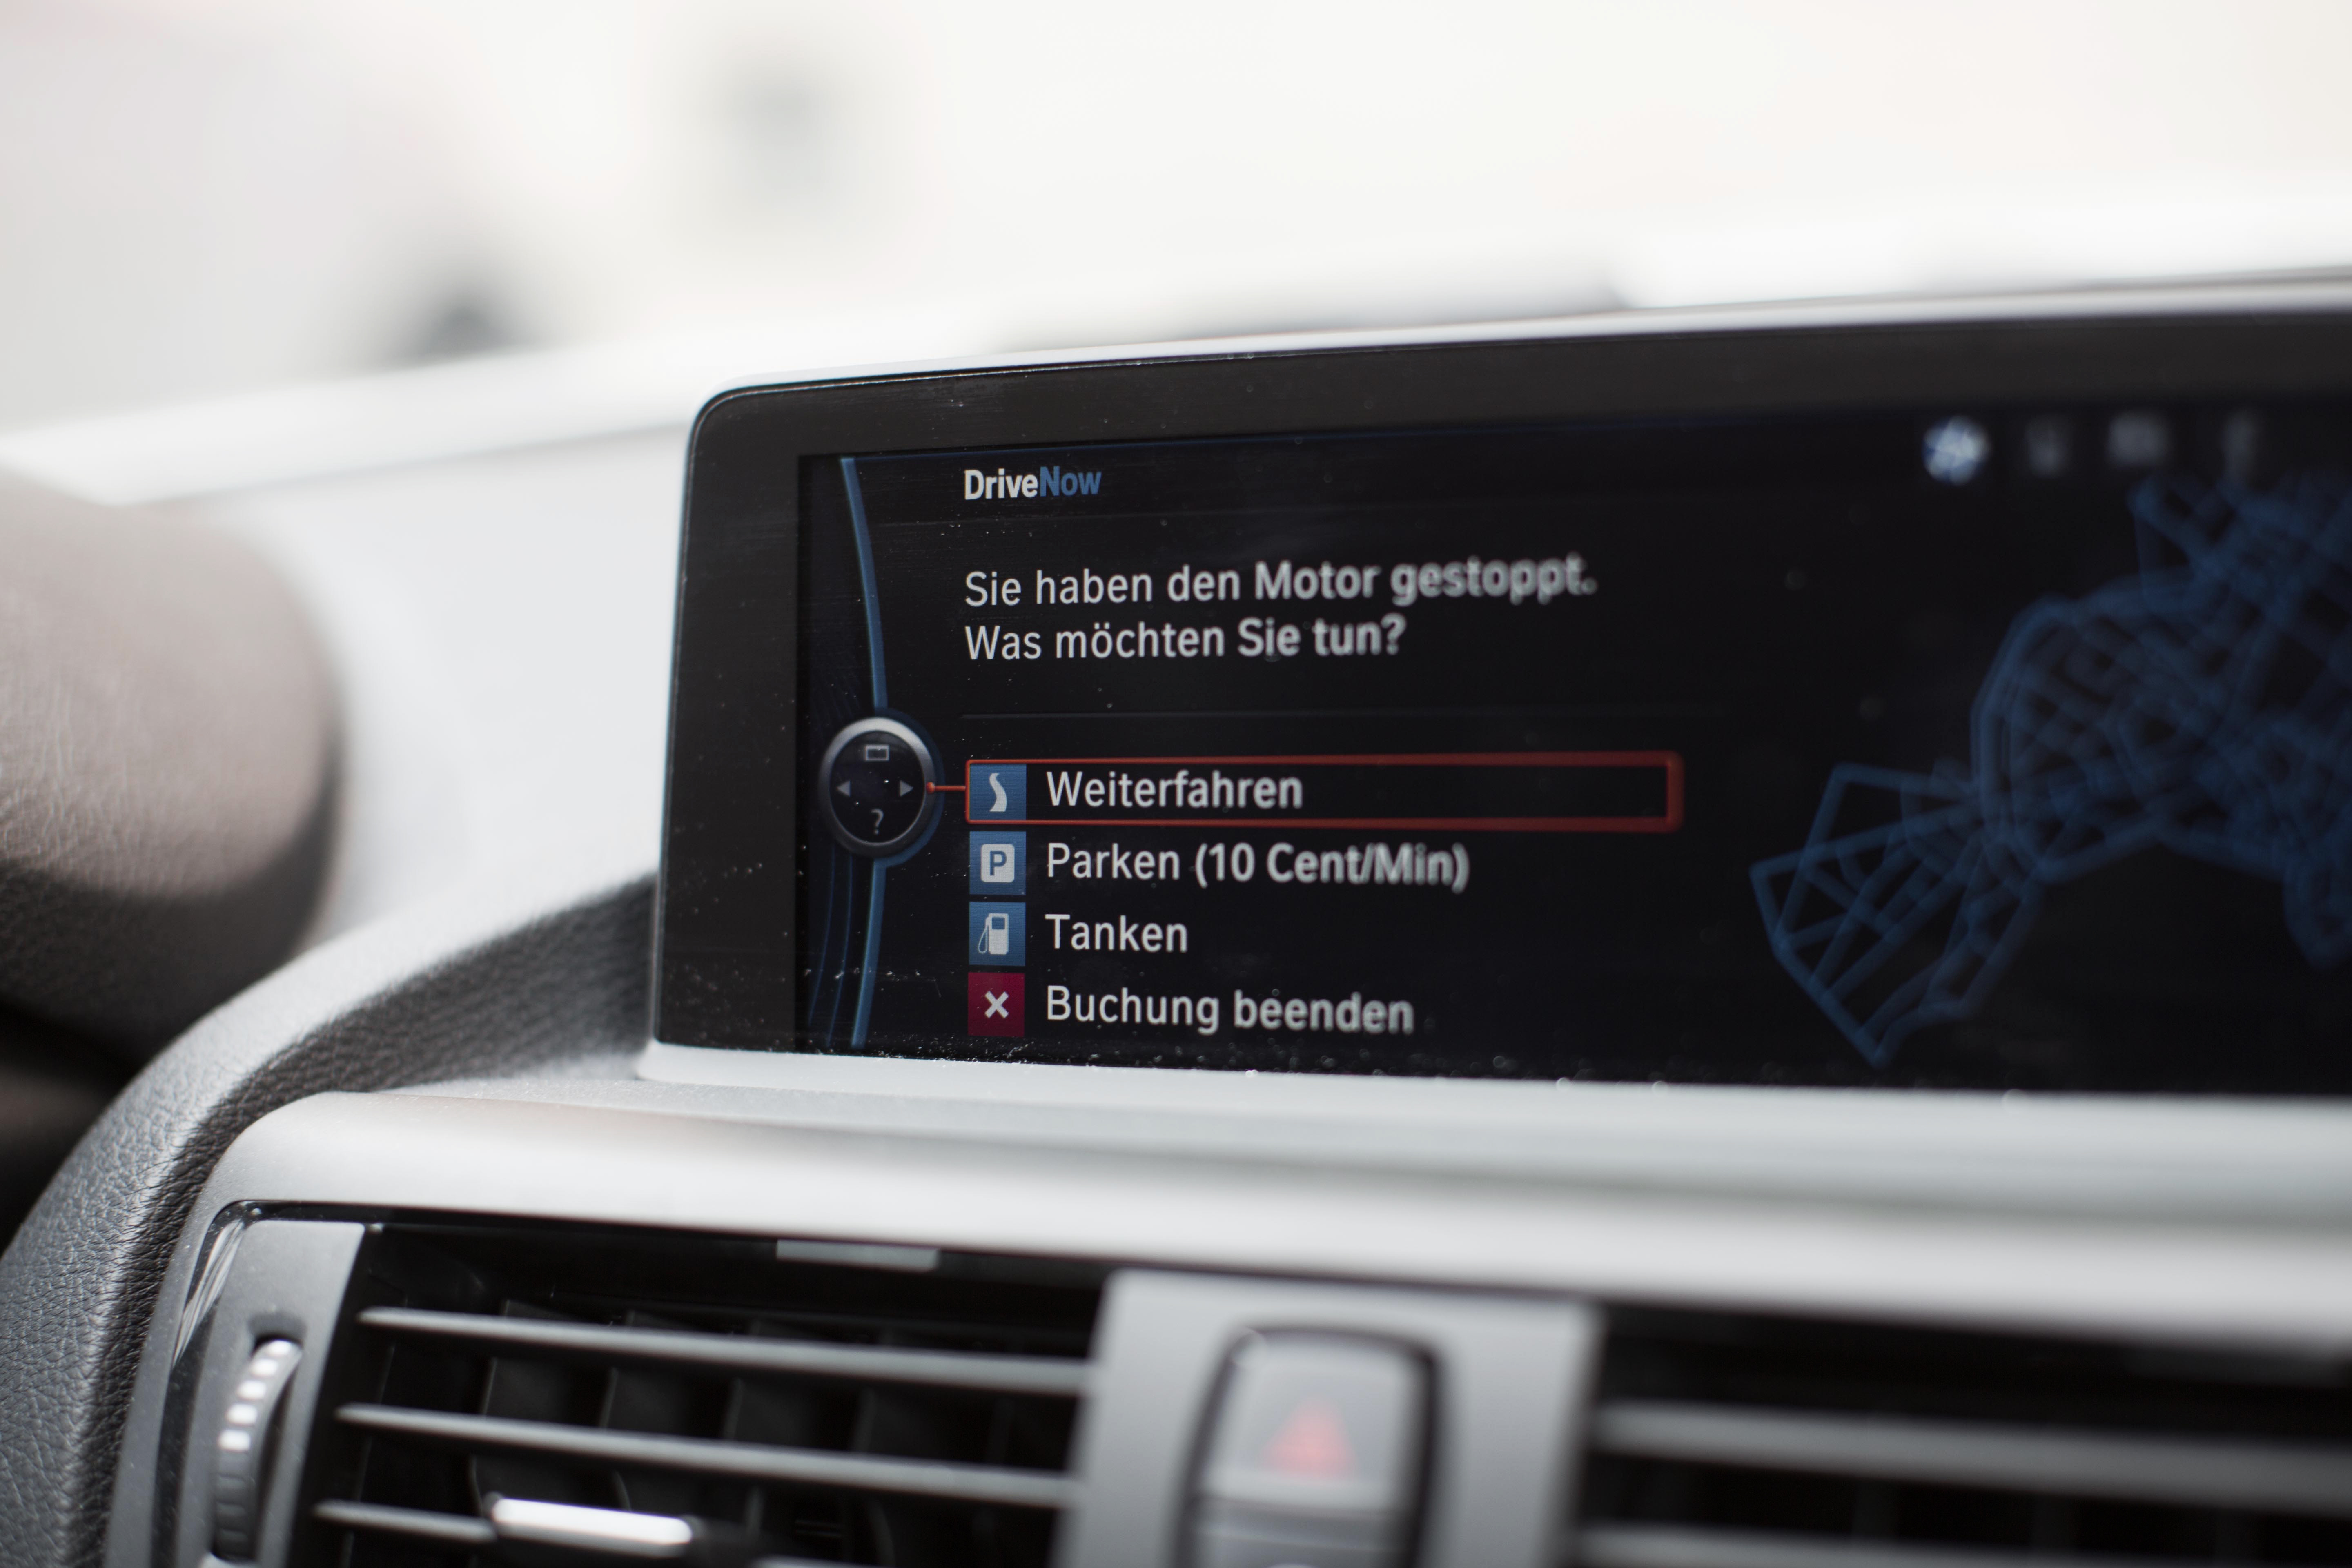 Drive_Now_(1) Cozy Blackberry Z10 Mit Bmw Verbinden Cars Trend